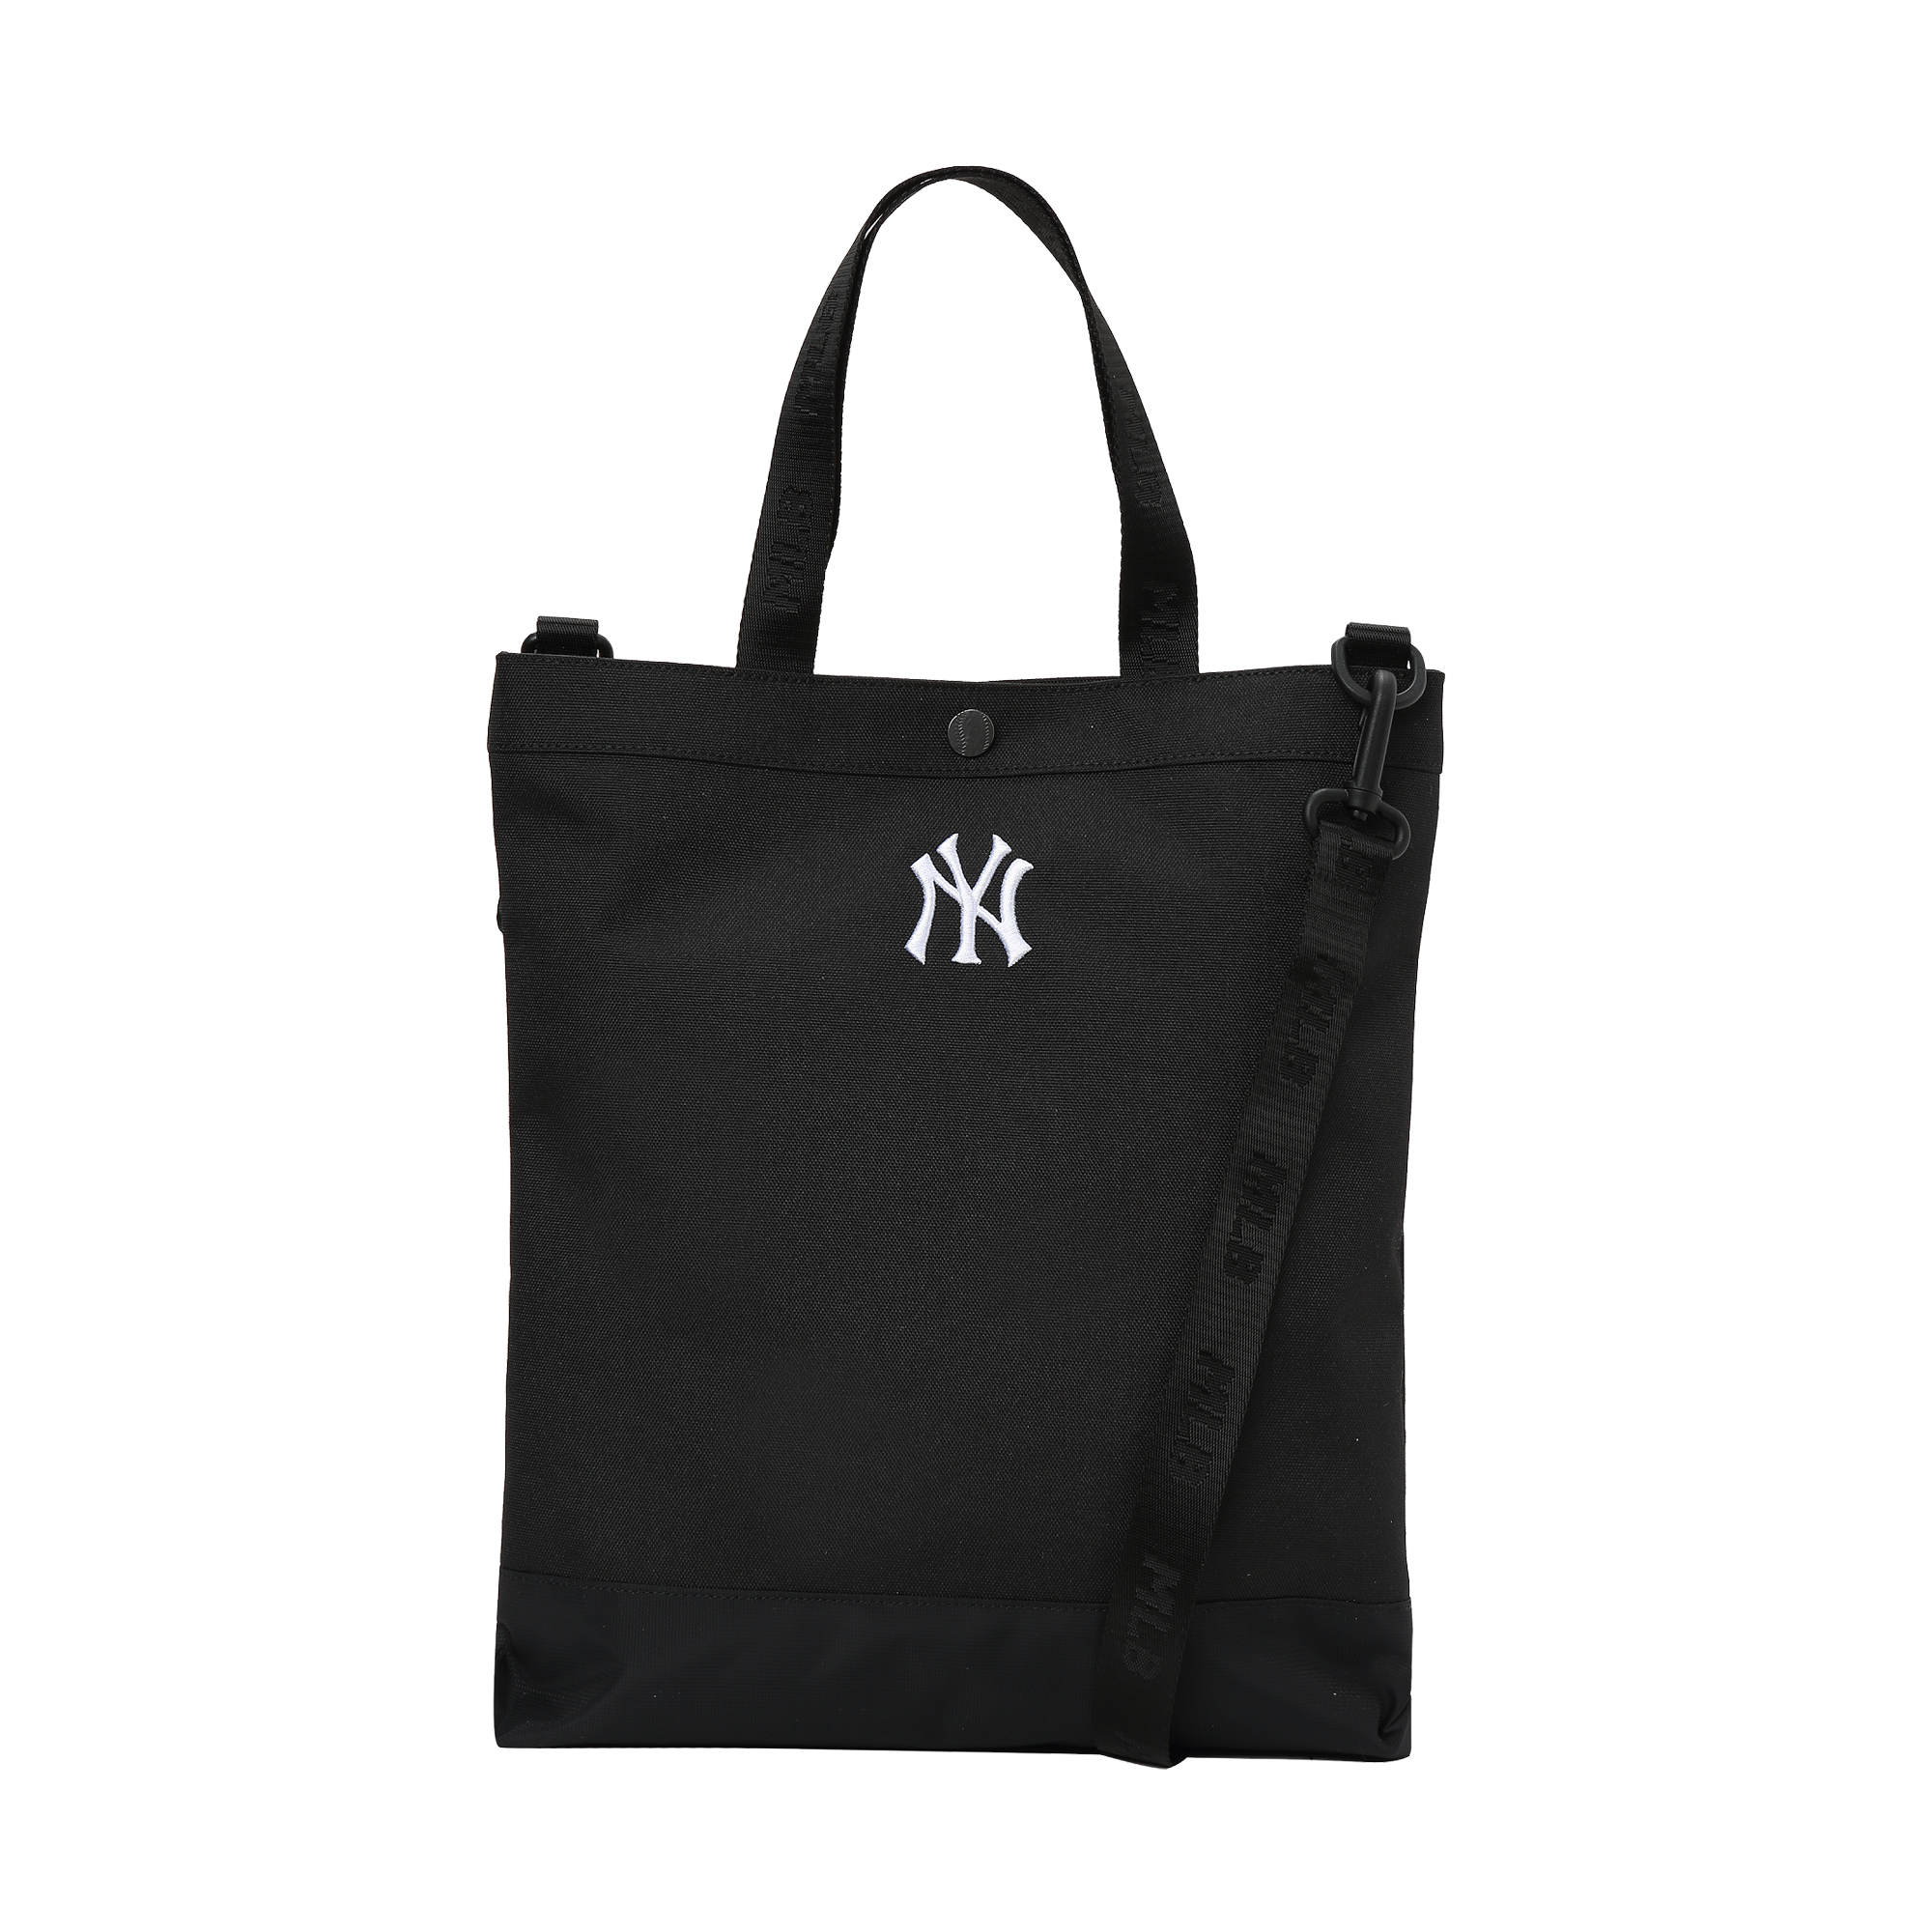 MLBKIDS SCHOOL BAG NEW YORK YANKEES SUPERFAN SIMPLE LOGO SUB BAG